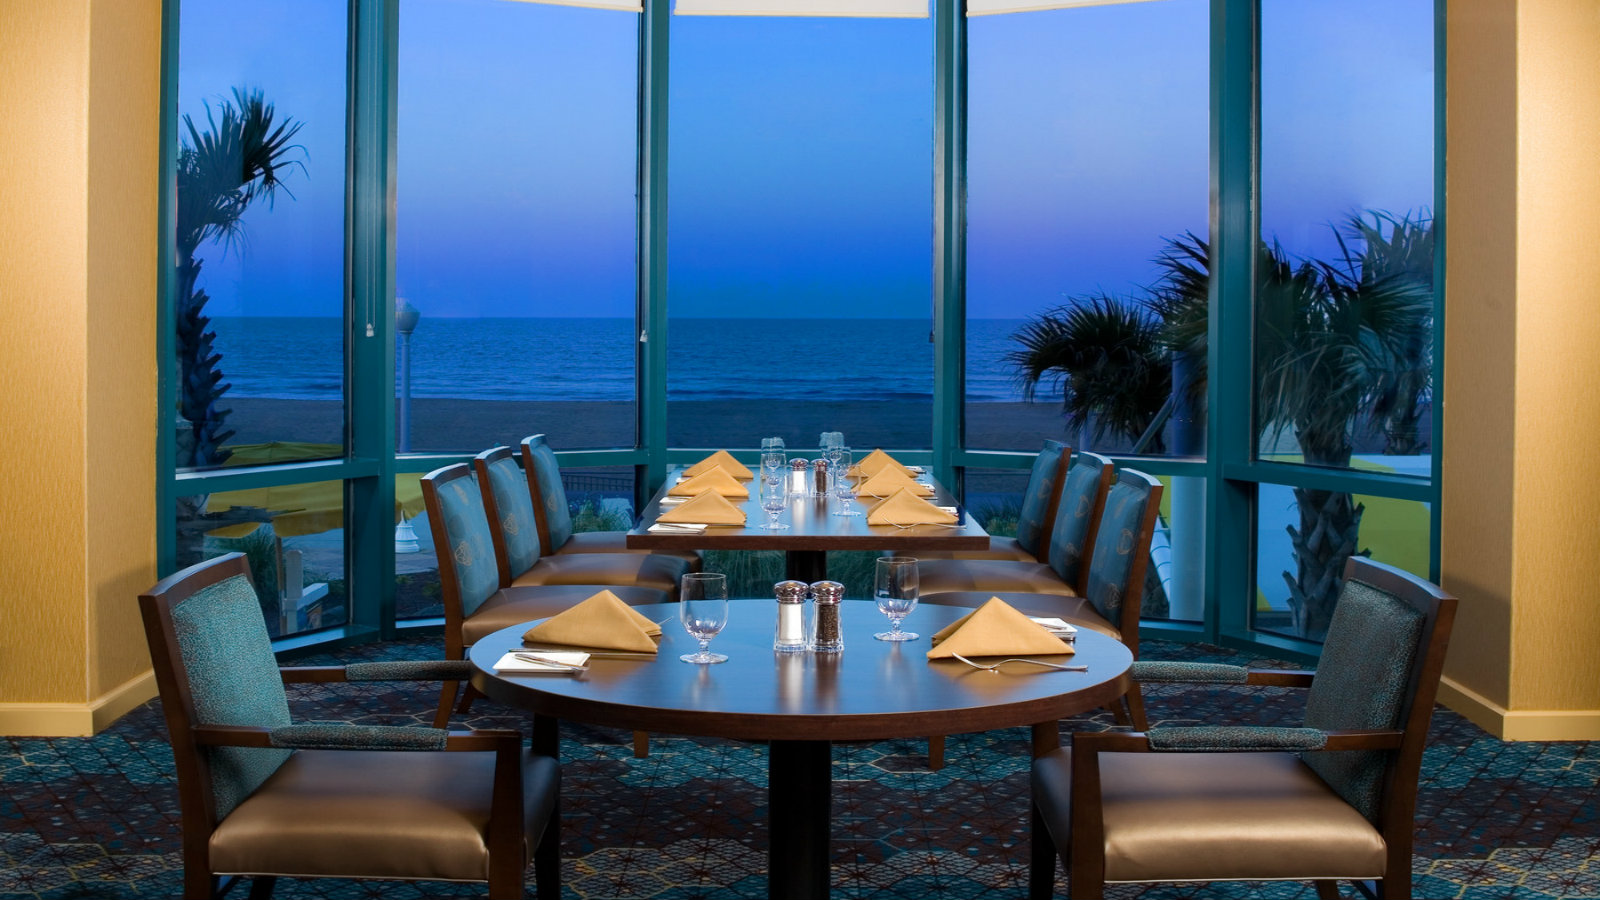 Fusion Restaurant and Lounge at Sheraton Virginia Beach Oceanfront Hotel